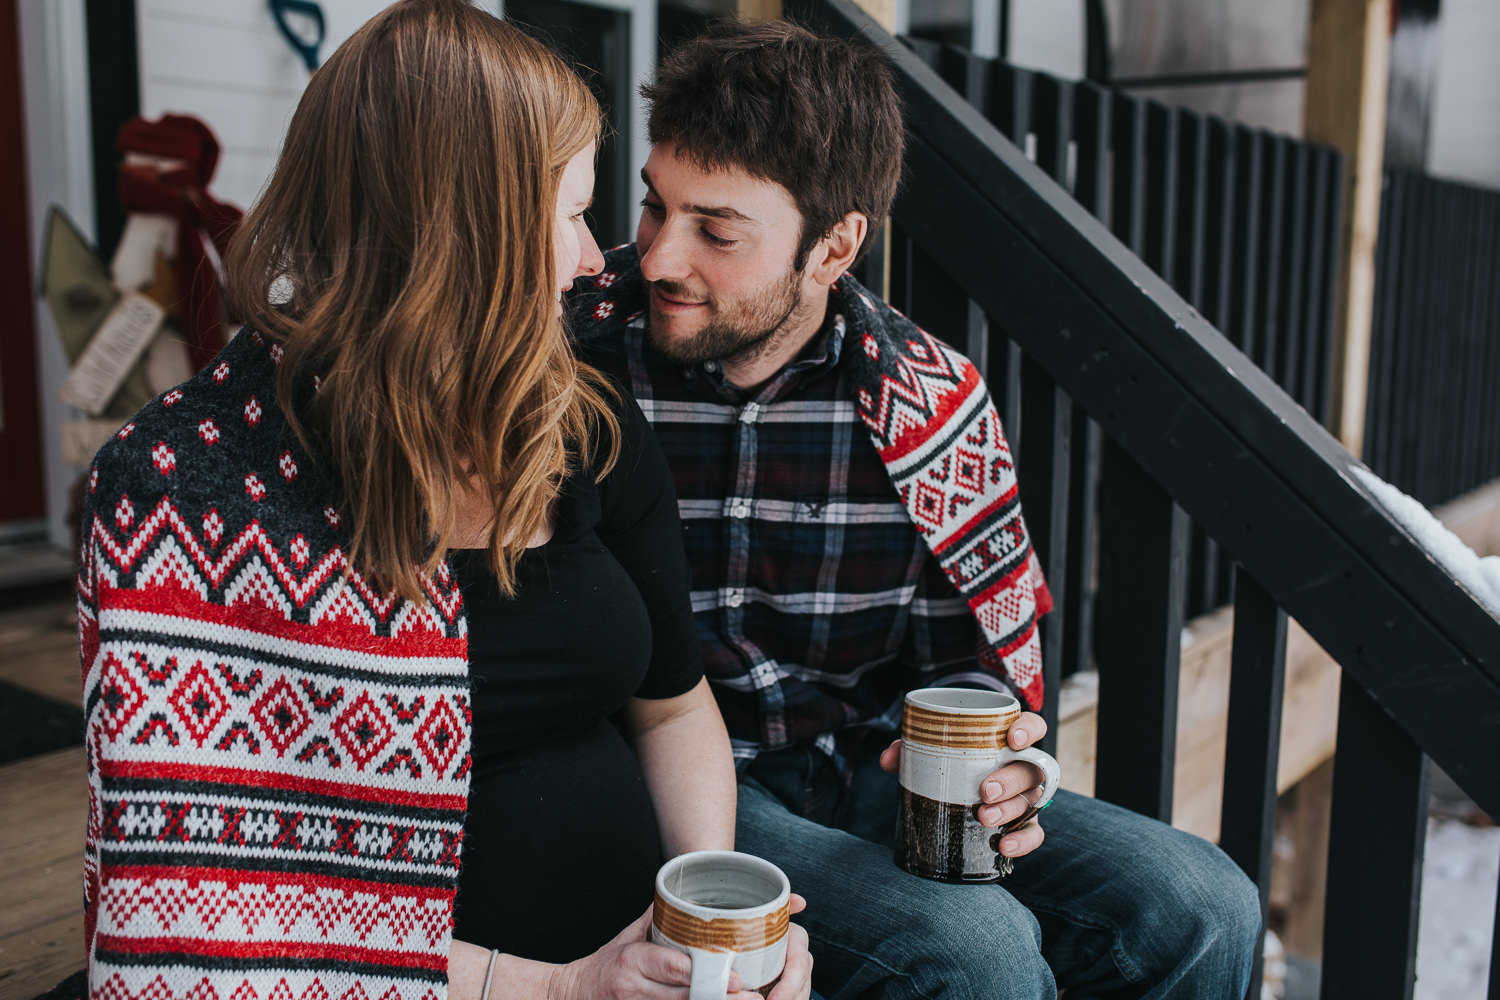 parents to be sitting on front porch steps wrapped in blanket looking at one another  - Stouffville lifestyle photography